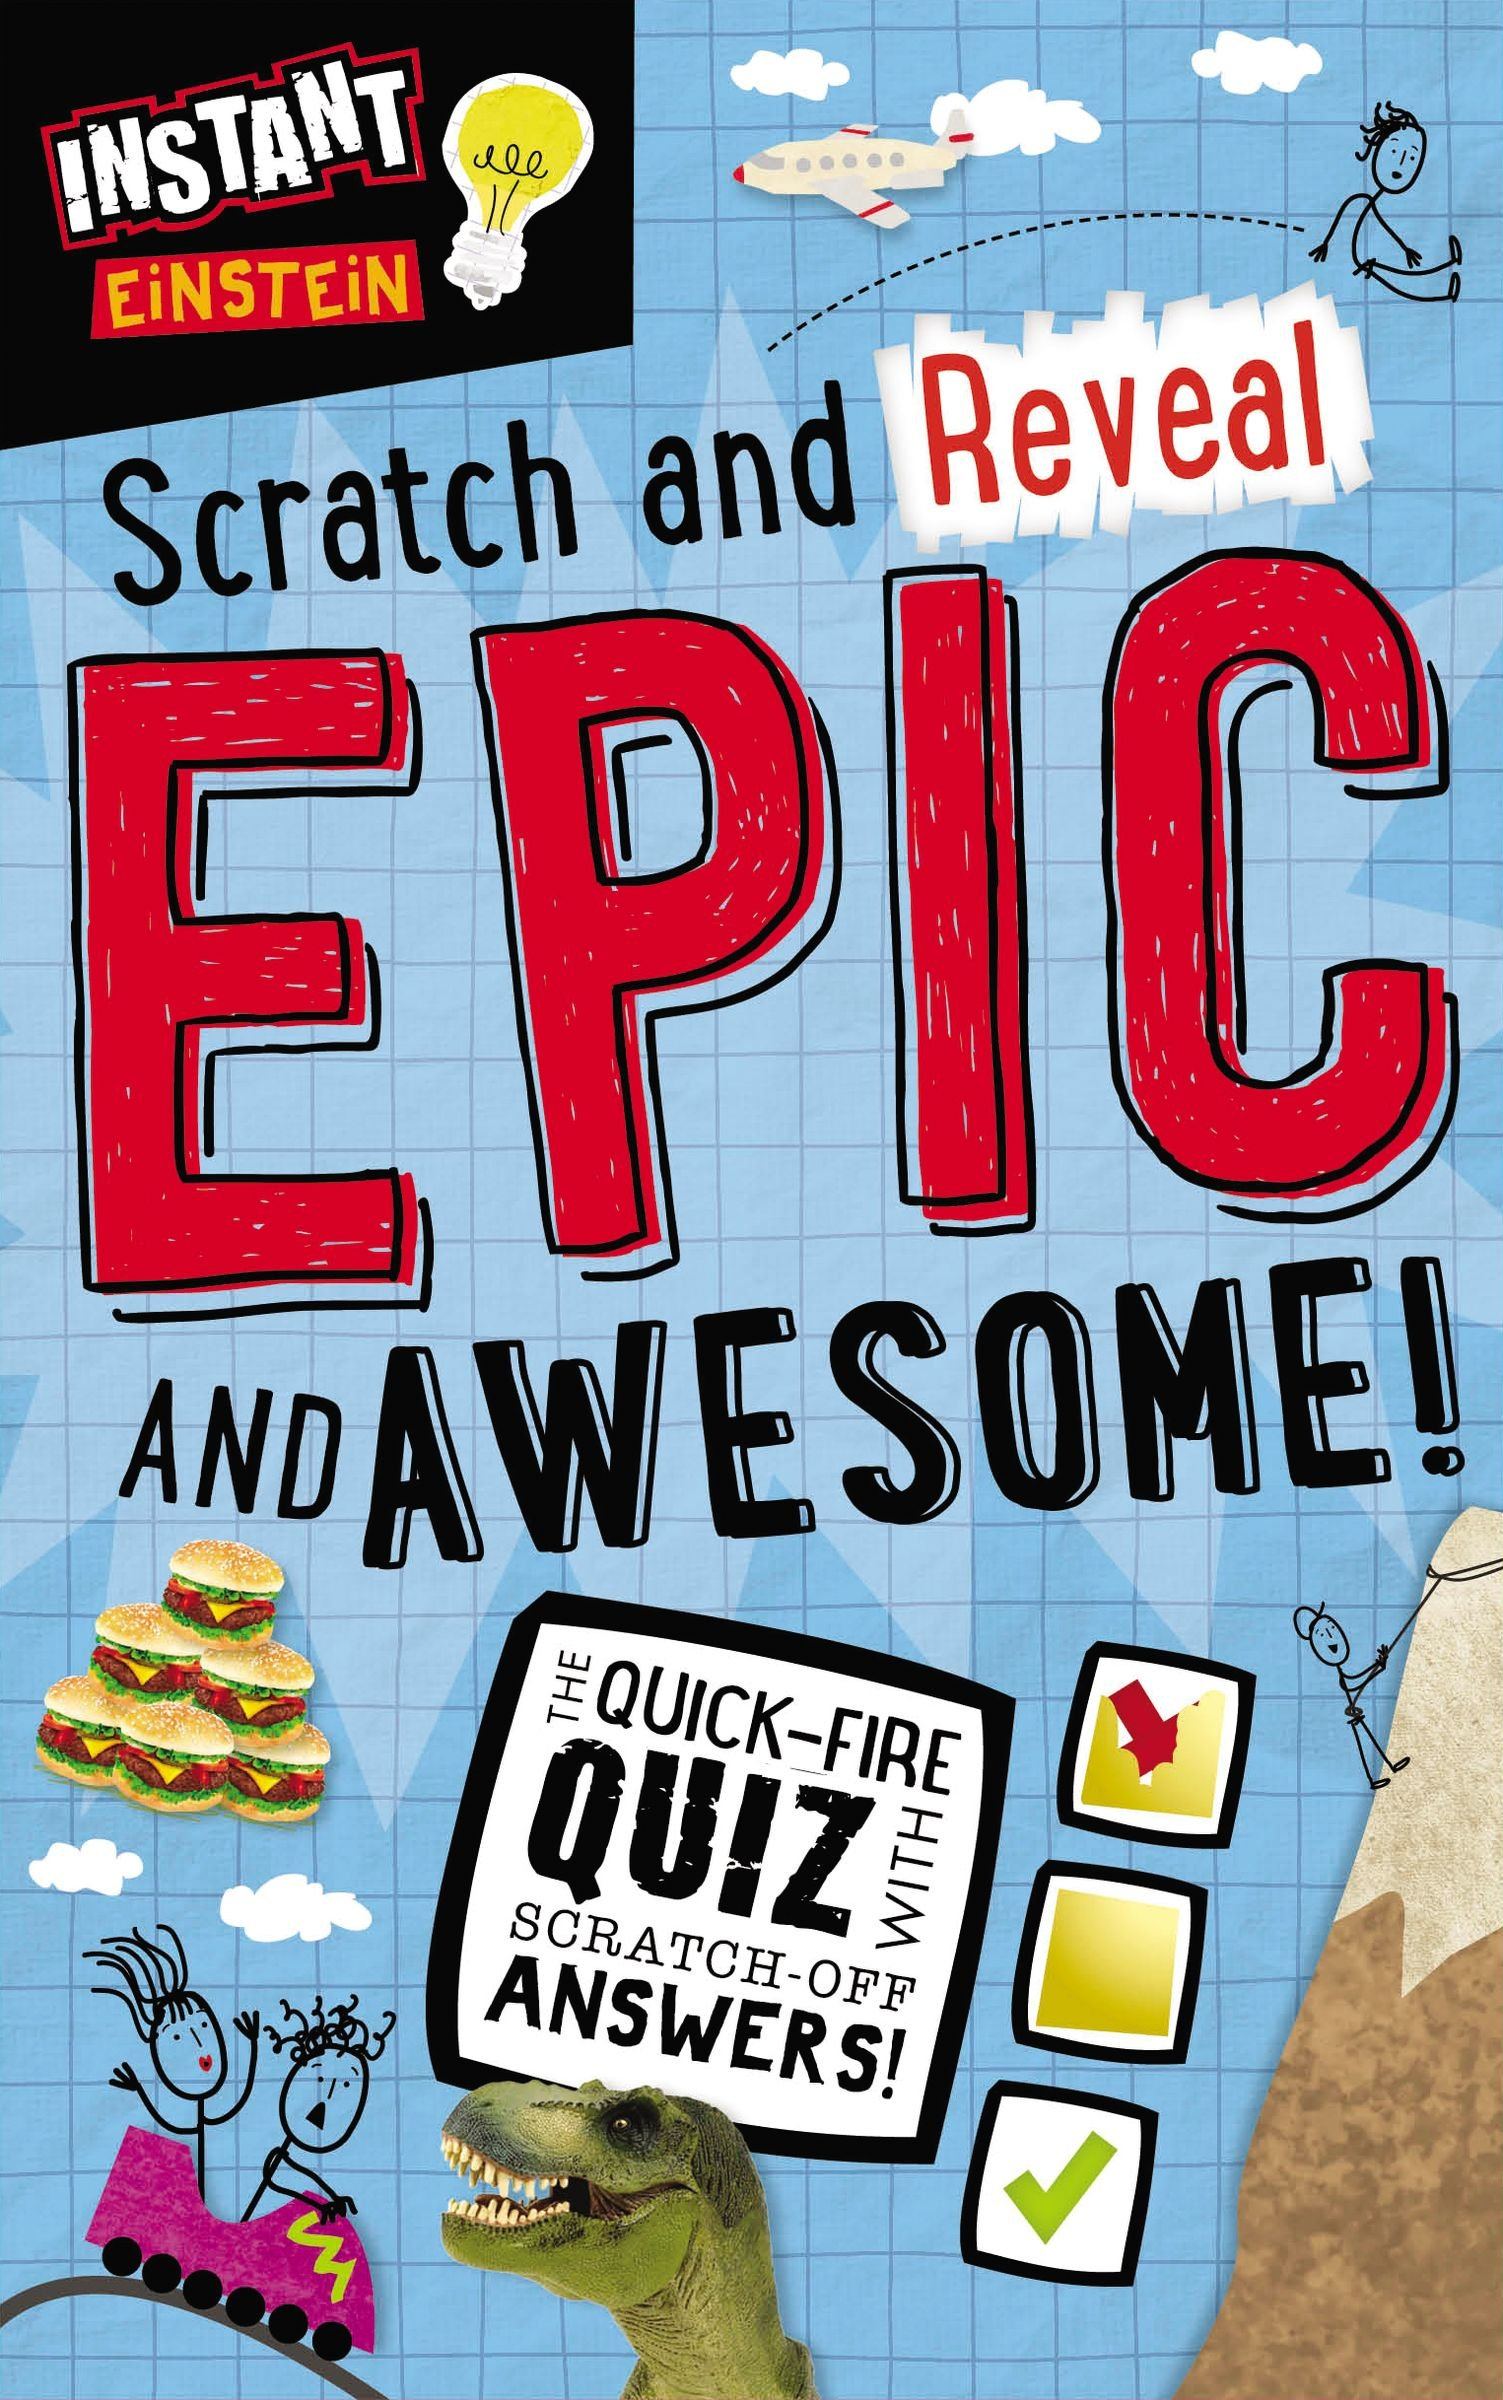 Epic and Awesome: Scratch and Reveal (Instant Einstein) pdf